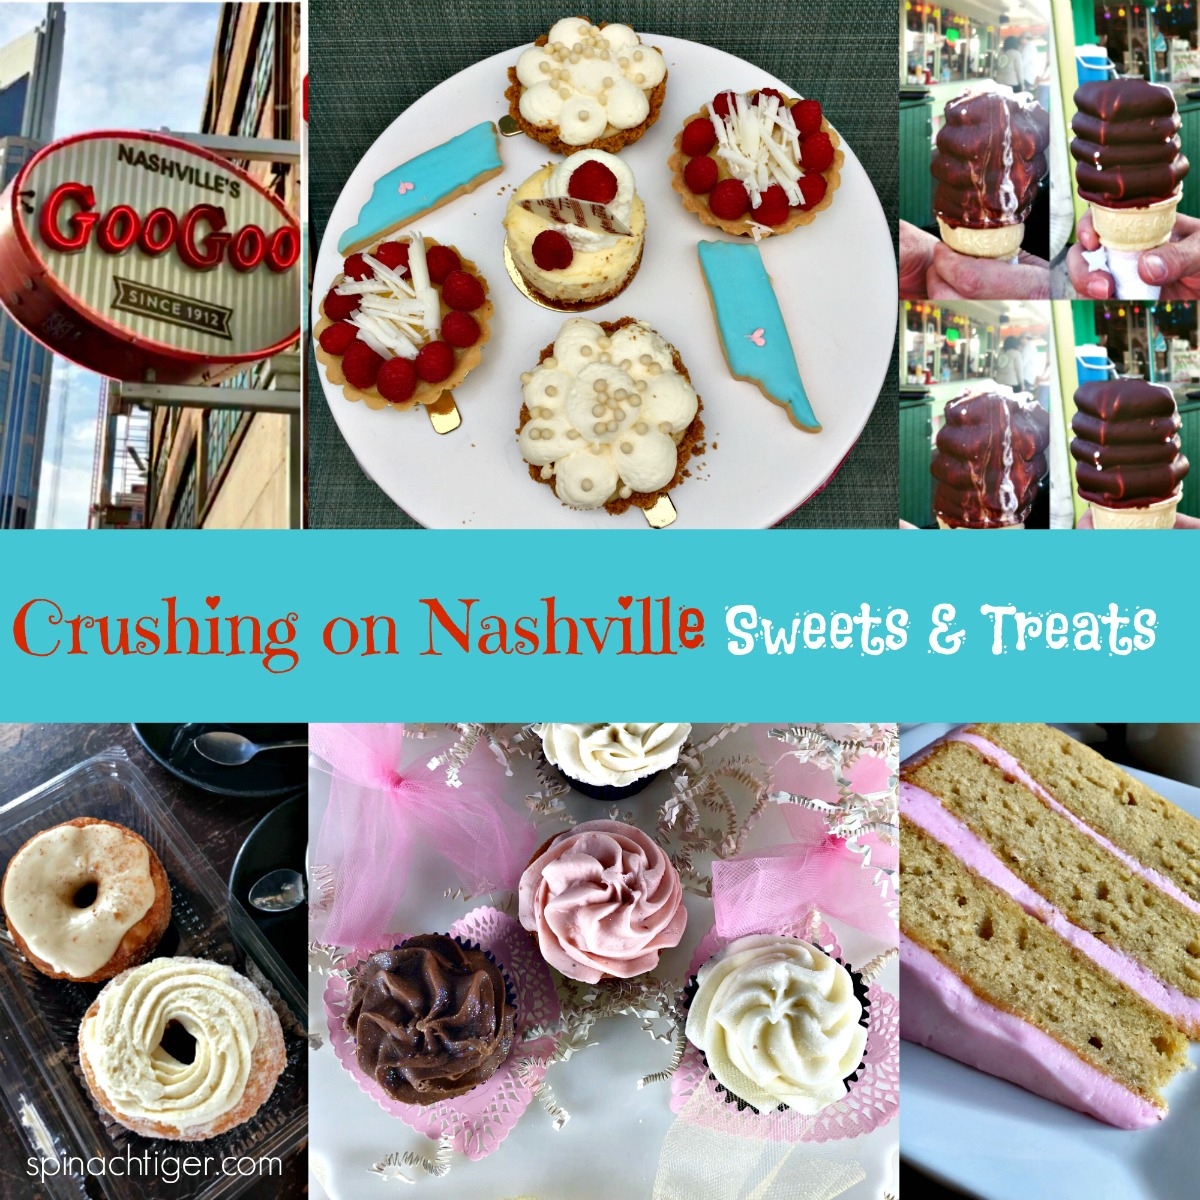 Crushing on Nashville Sweets & Treats